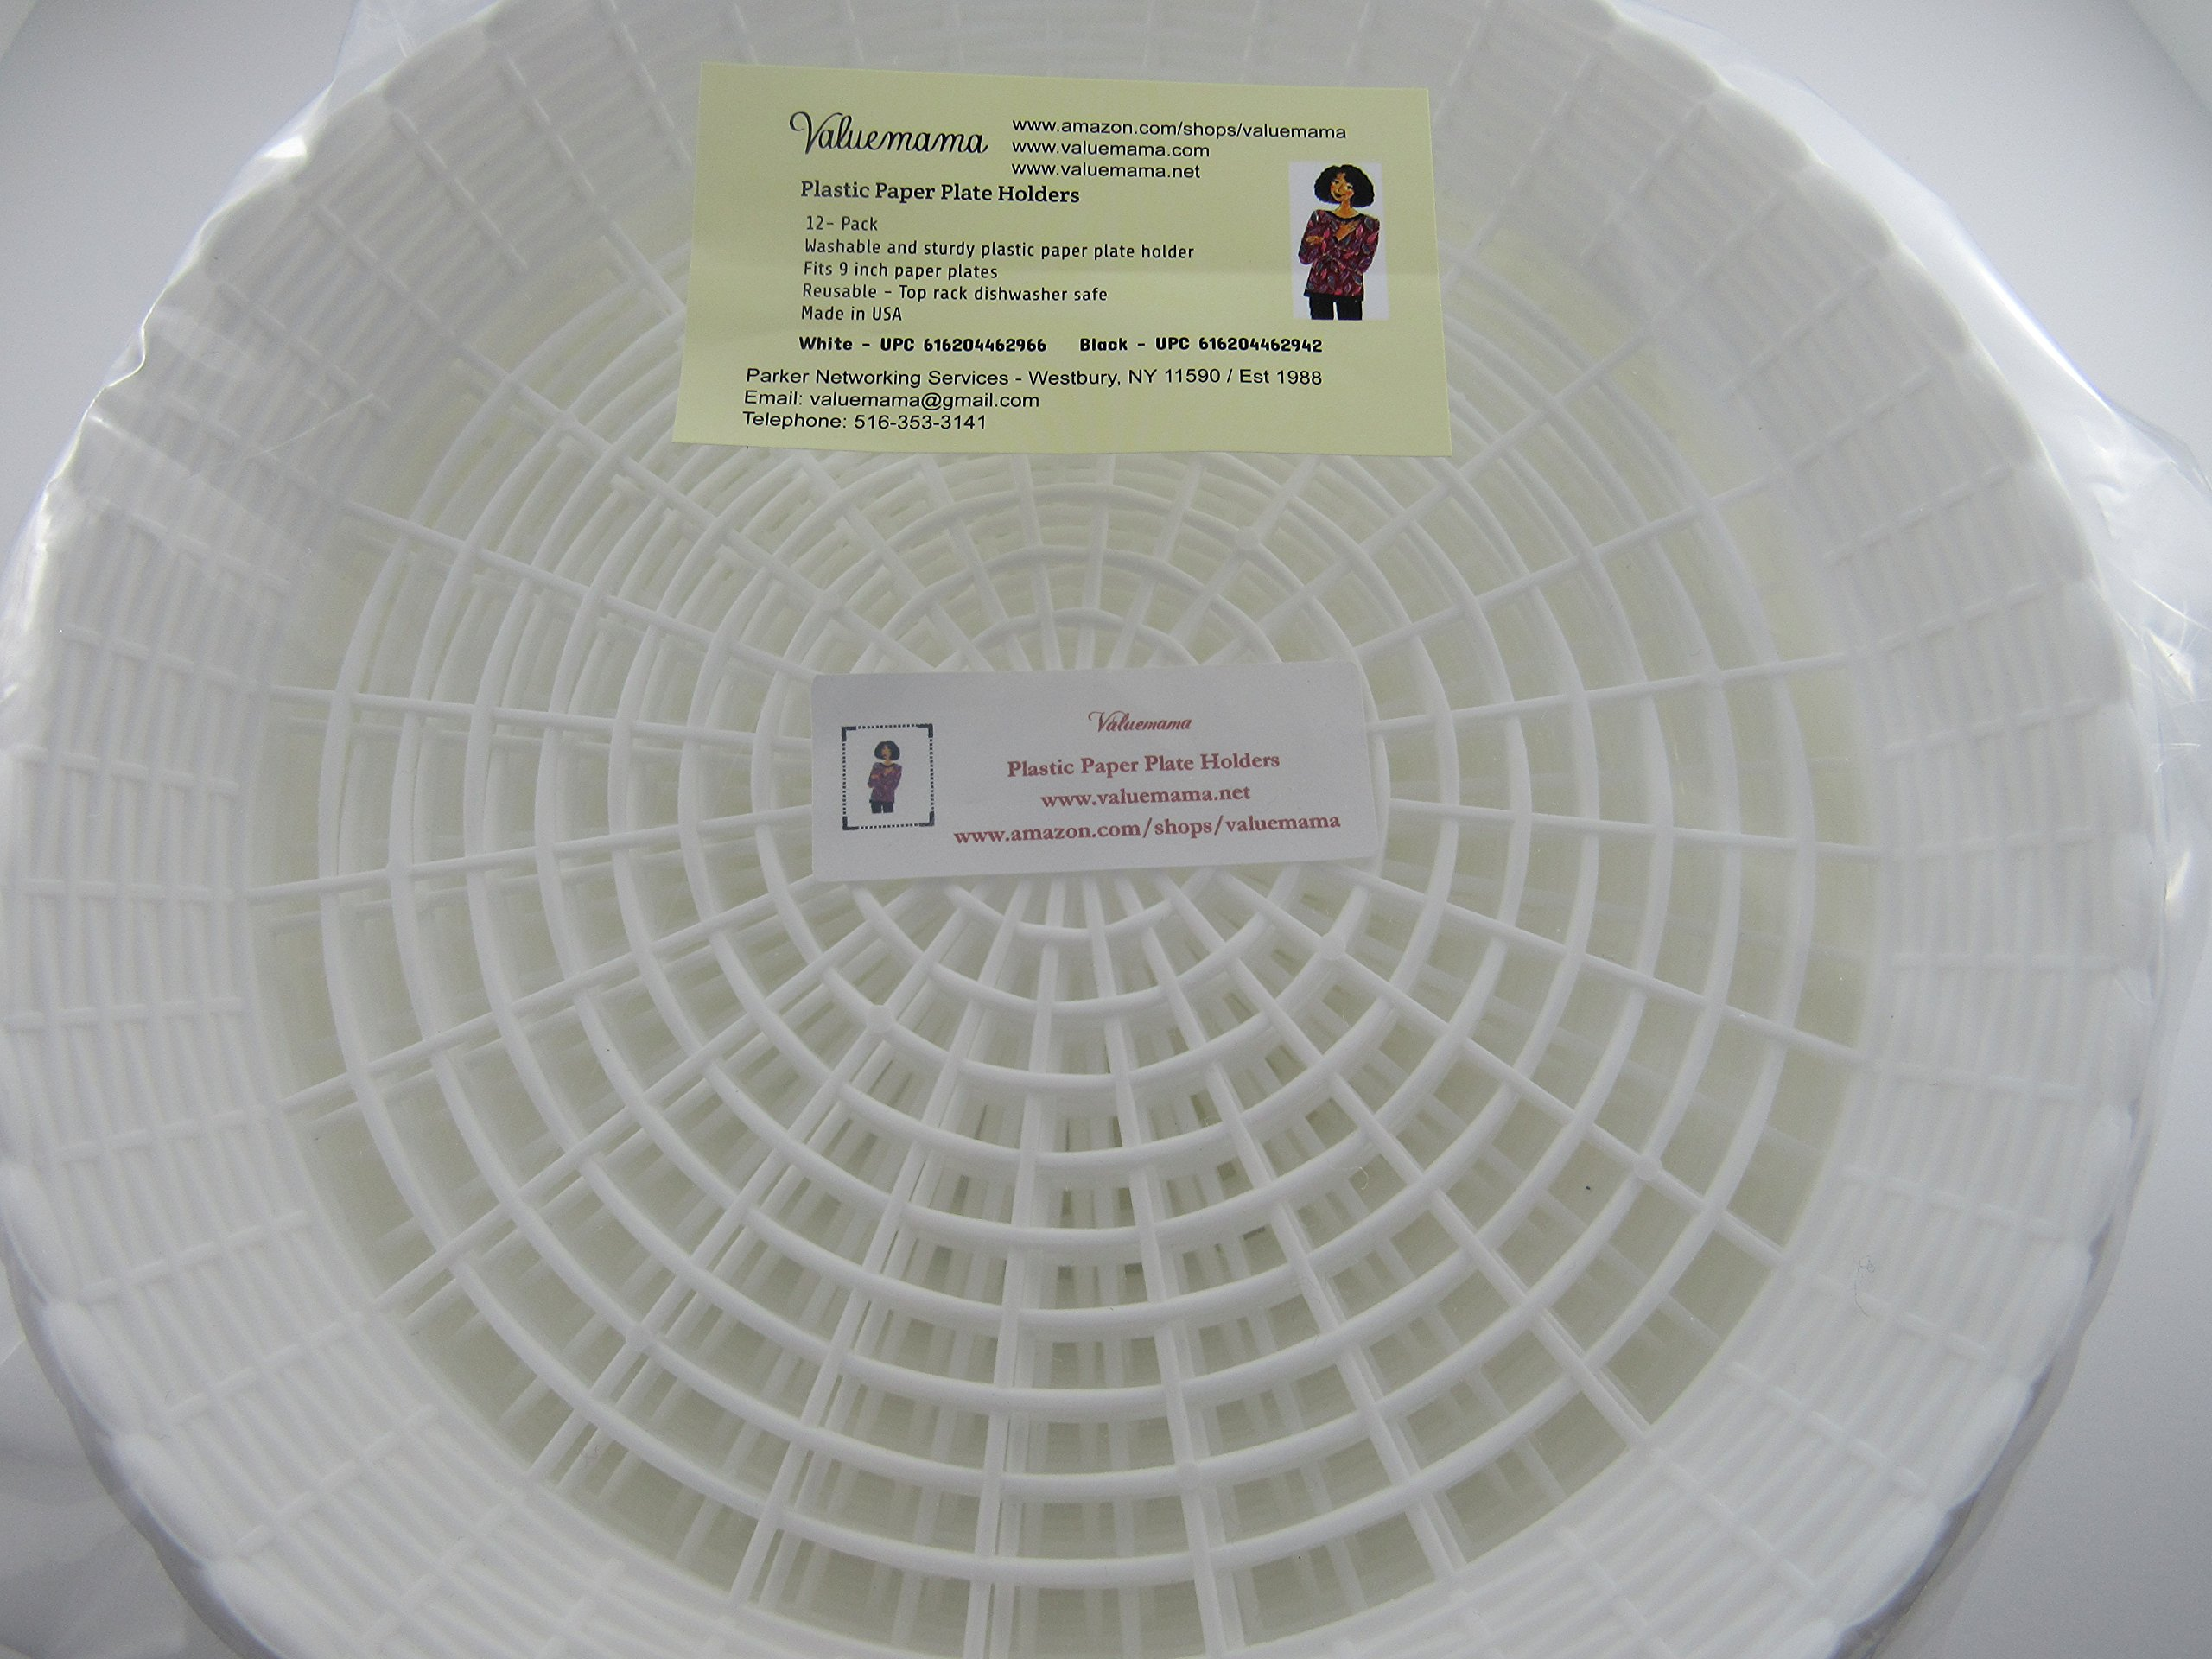 Paper Plate Holder White Plastic Wicker for 9  Plates Pack of 12 Reusable - WHT-001 u003c Disposable Plates Bowls u0026 Cutlery u003c Health u0026 Household - TIBS & Paper Plate Holder White Plastic Wicker for 9